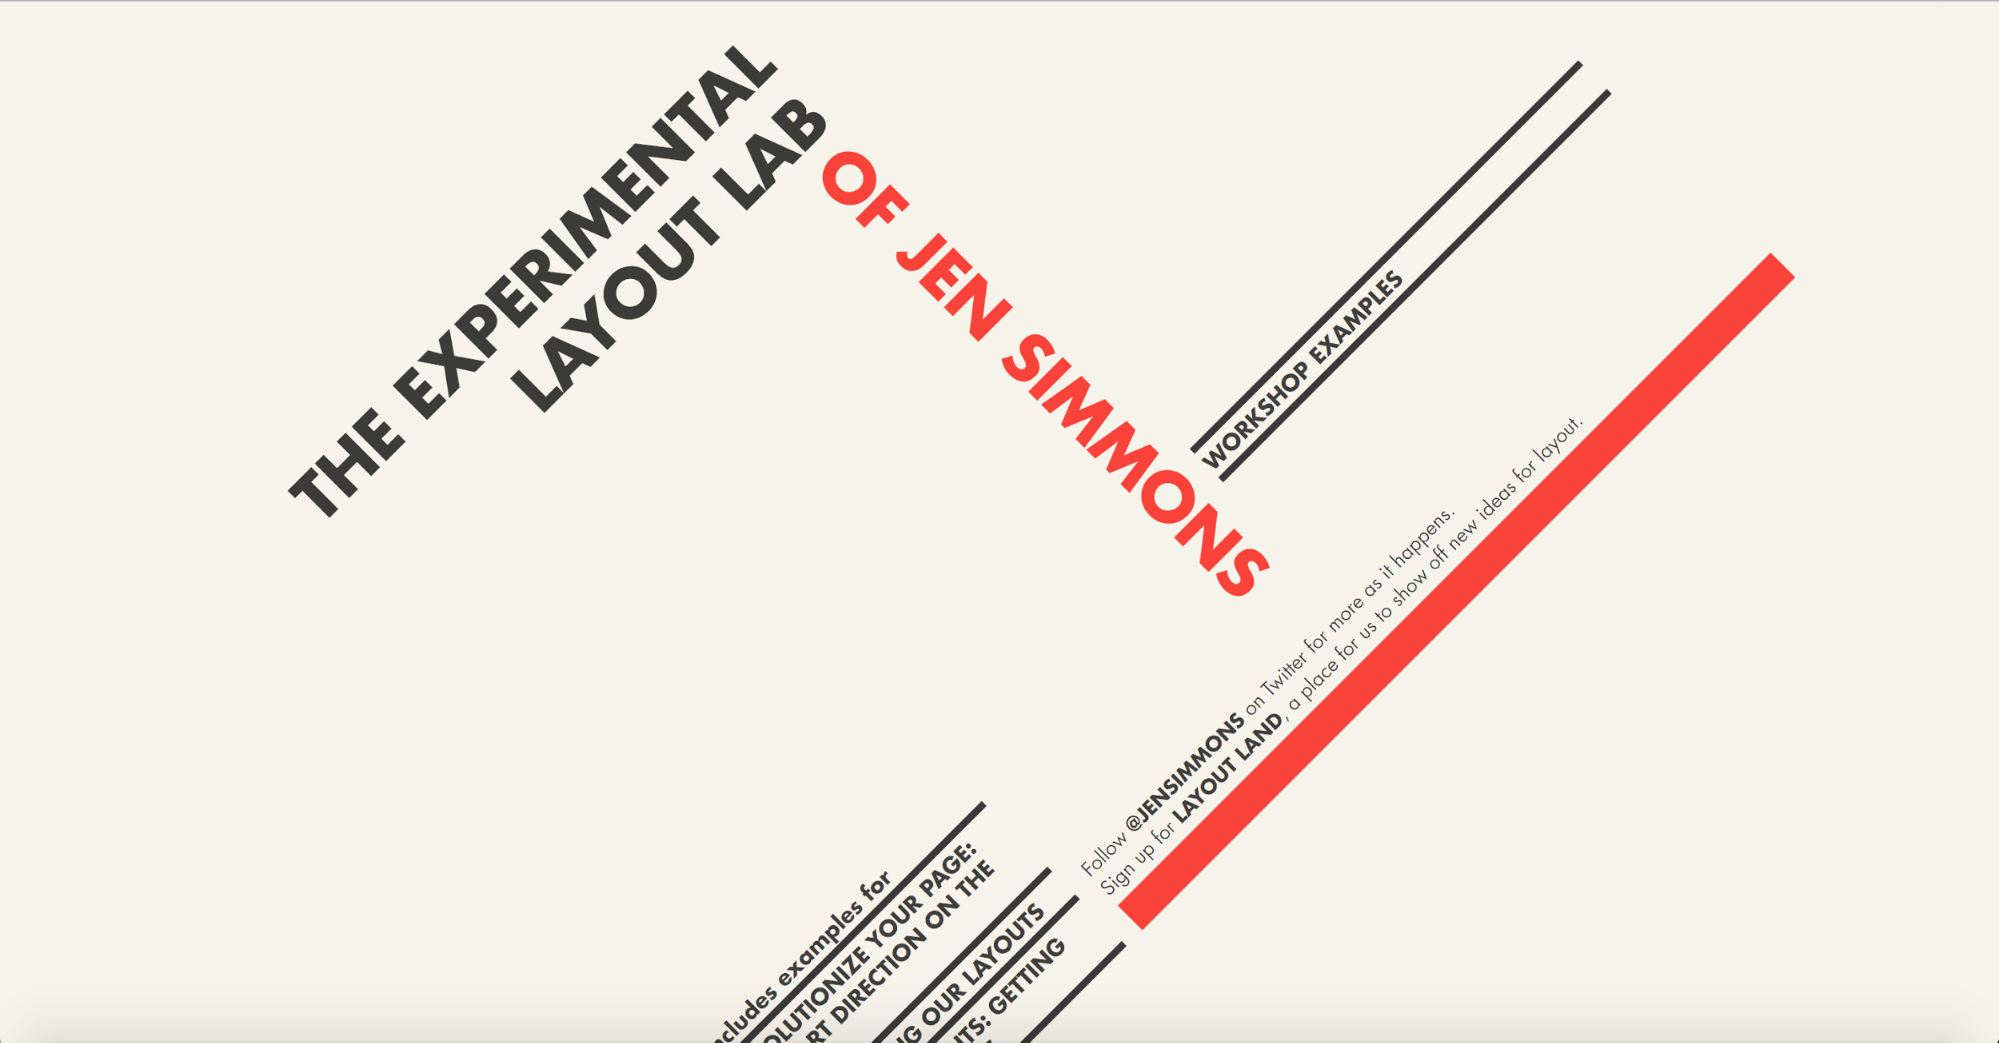 The Experimental Layout Lab of Jen Simmons